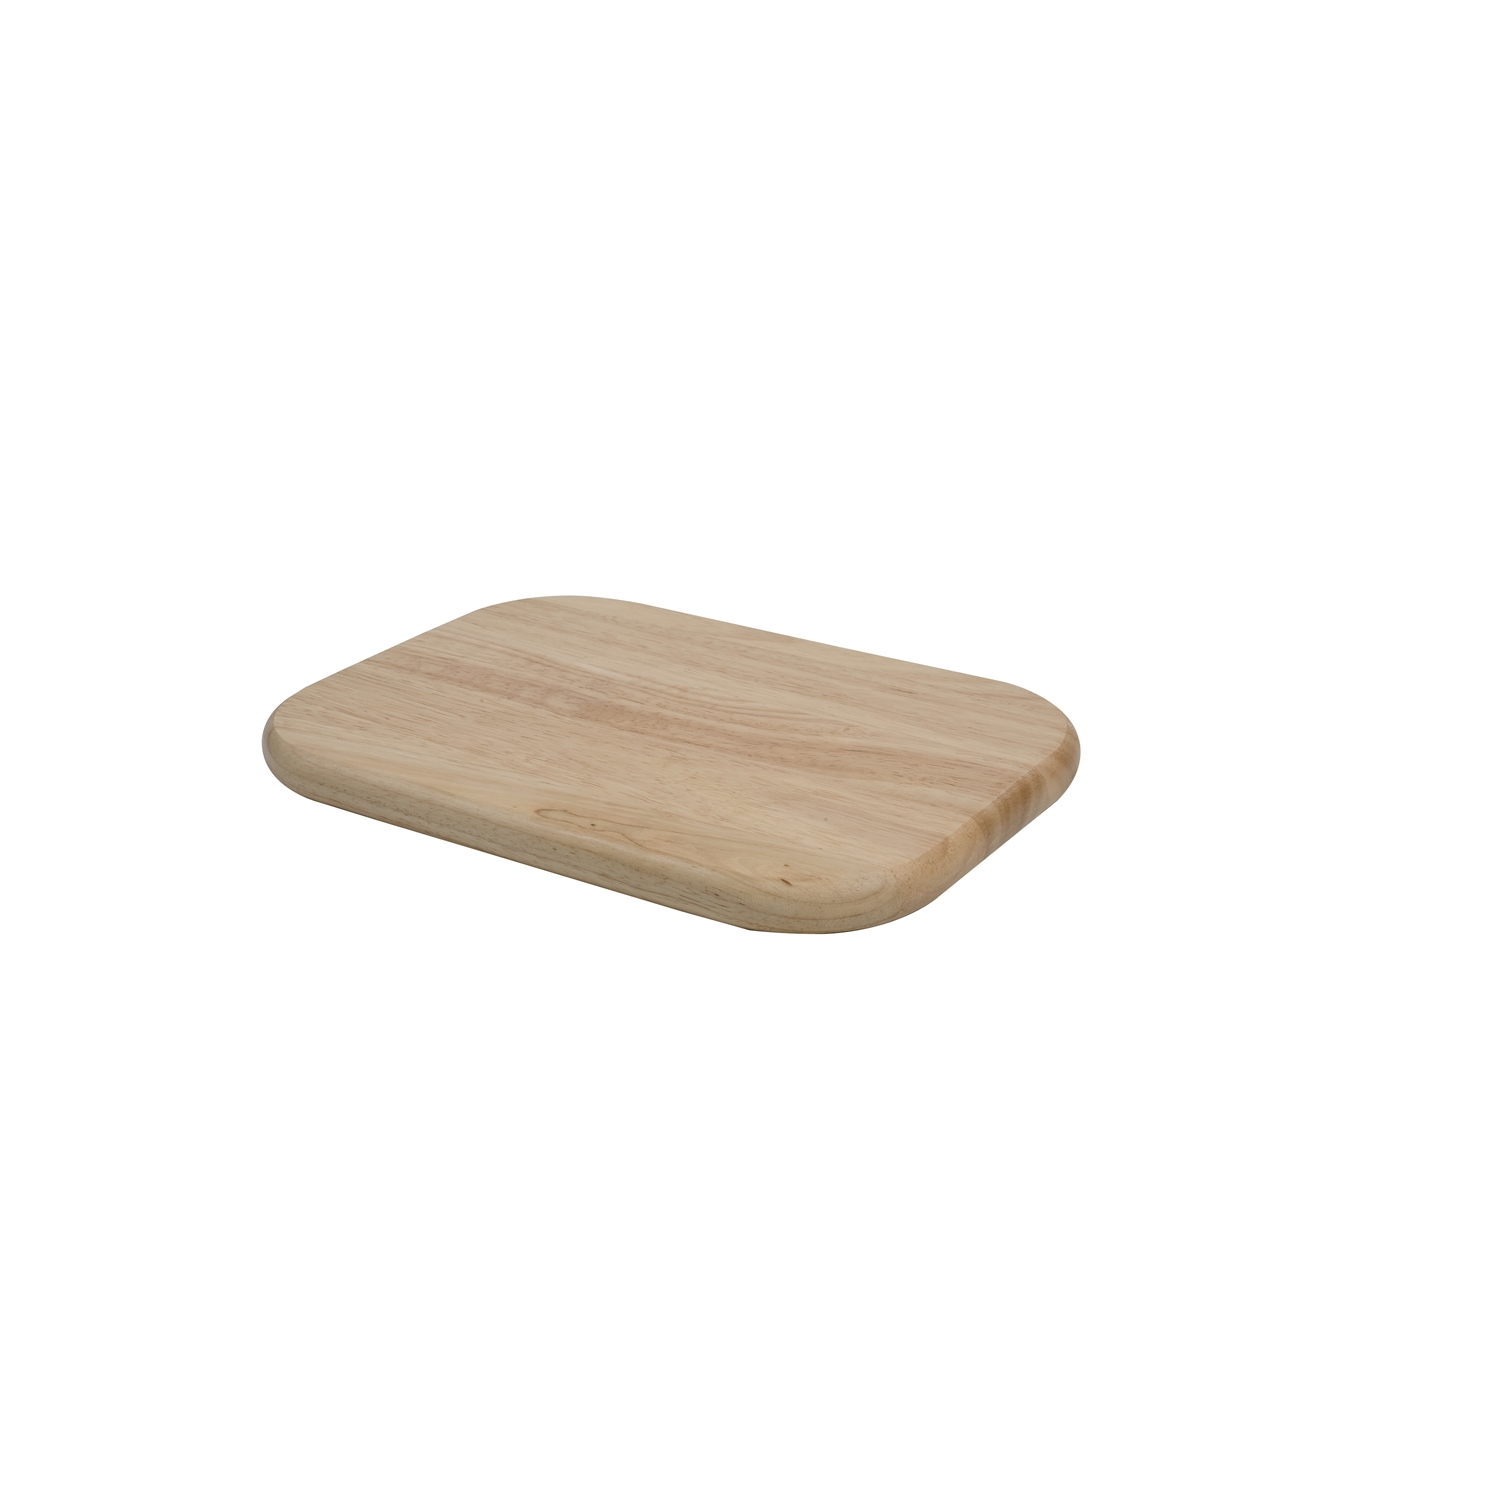 Image of T&G Woodware Rectangular Chopping Board Small